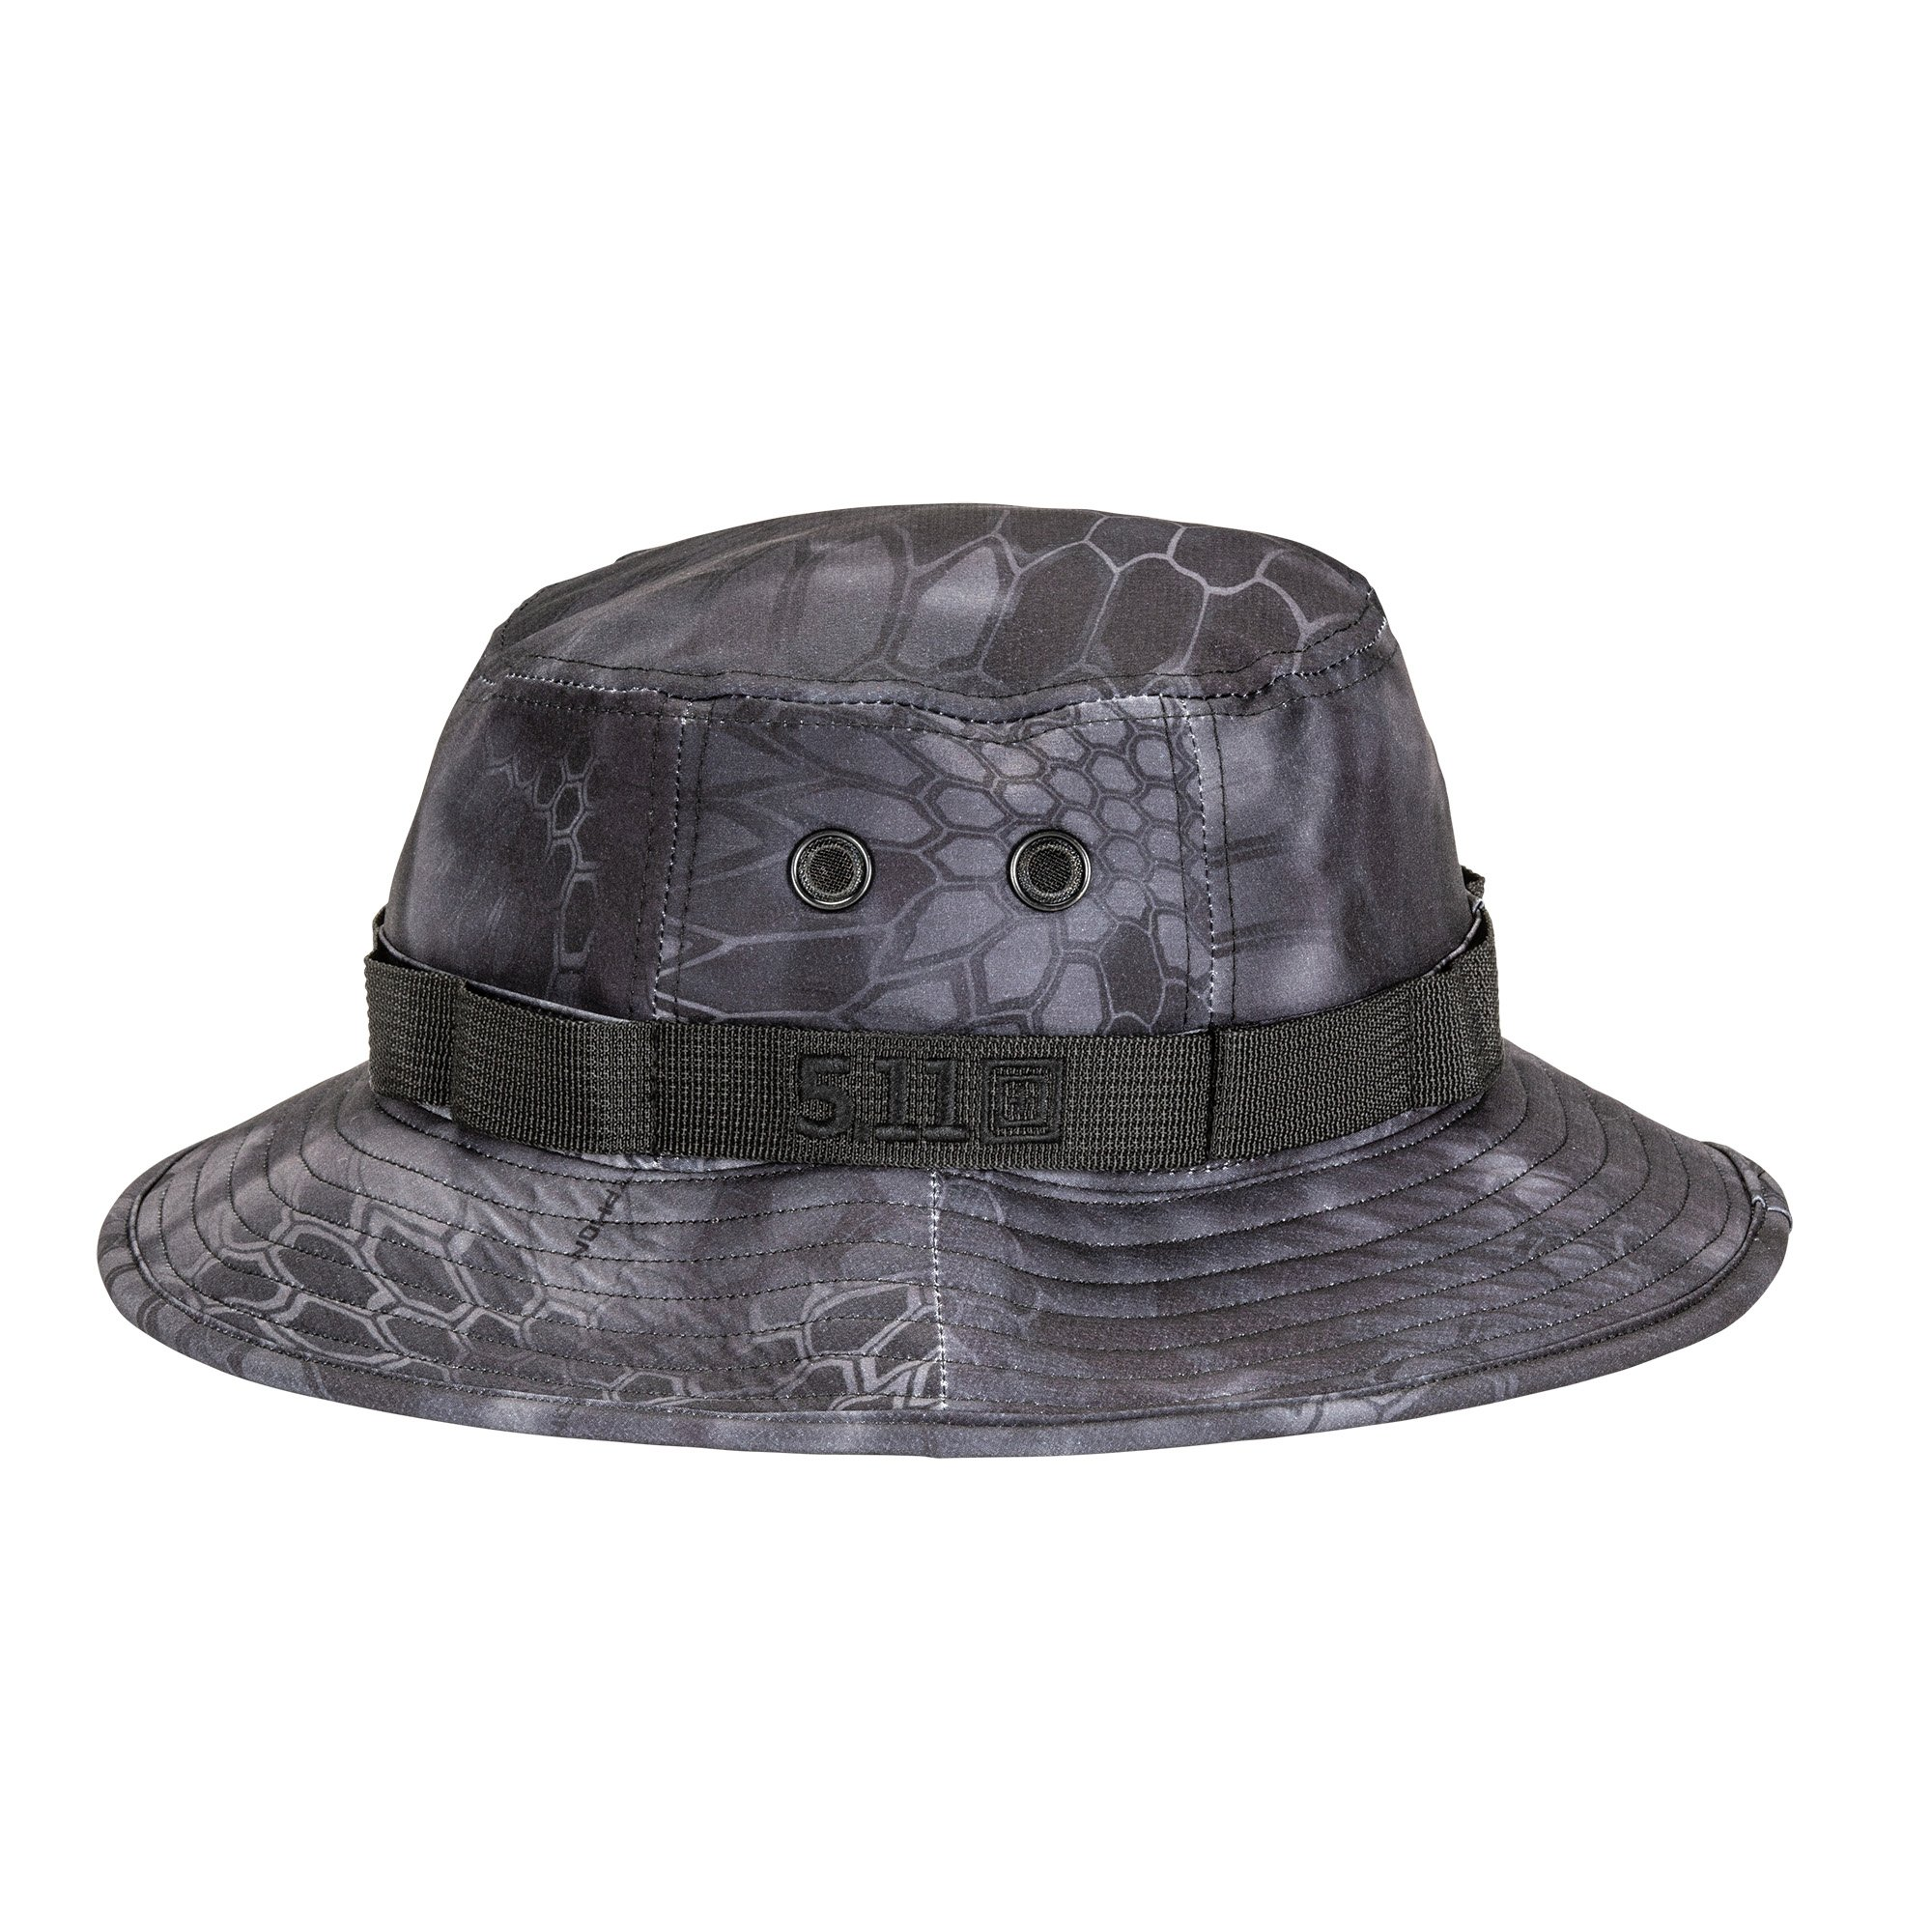 Nón 5.11 Tactical Boonie Hat – TYPH